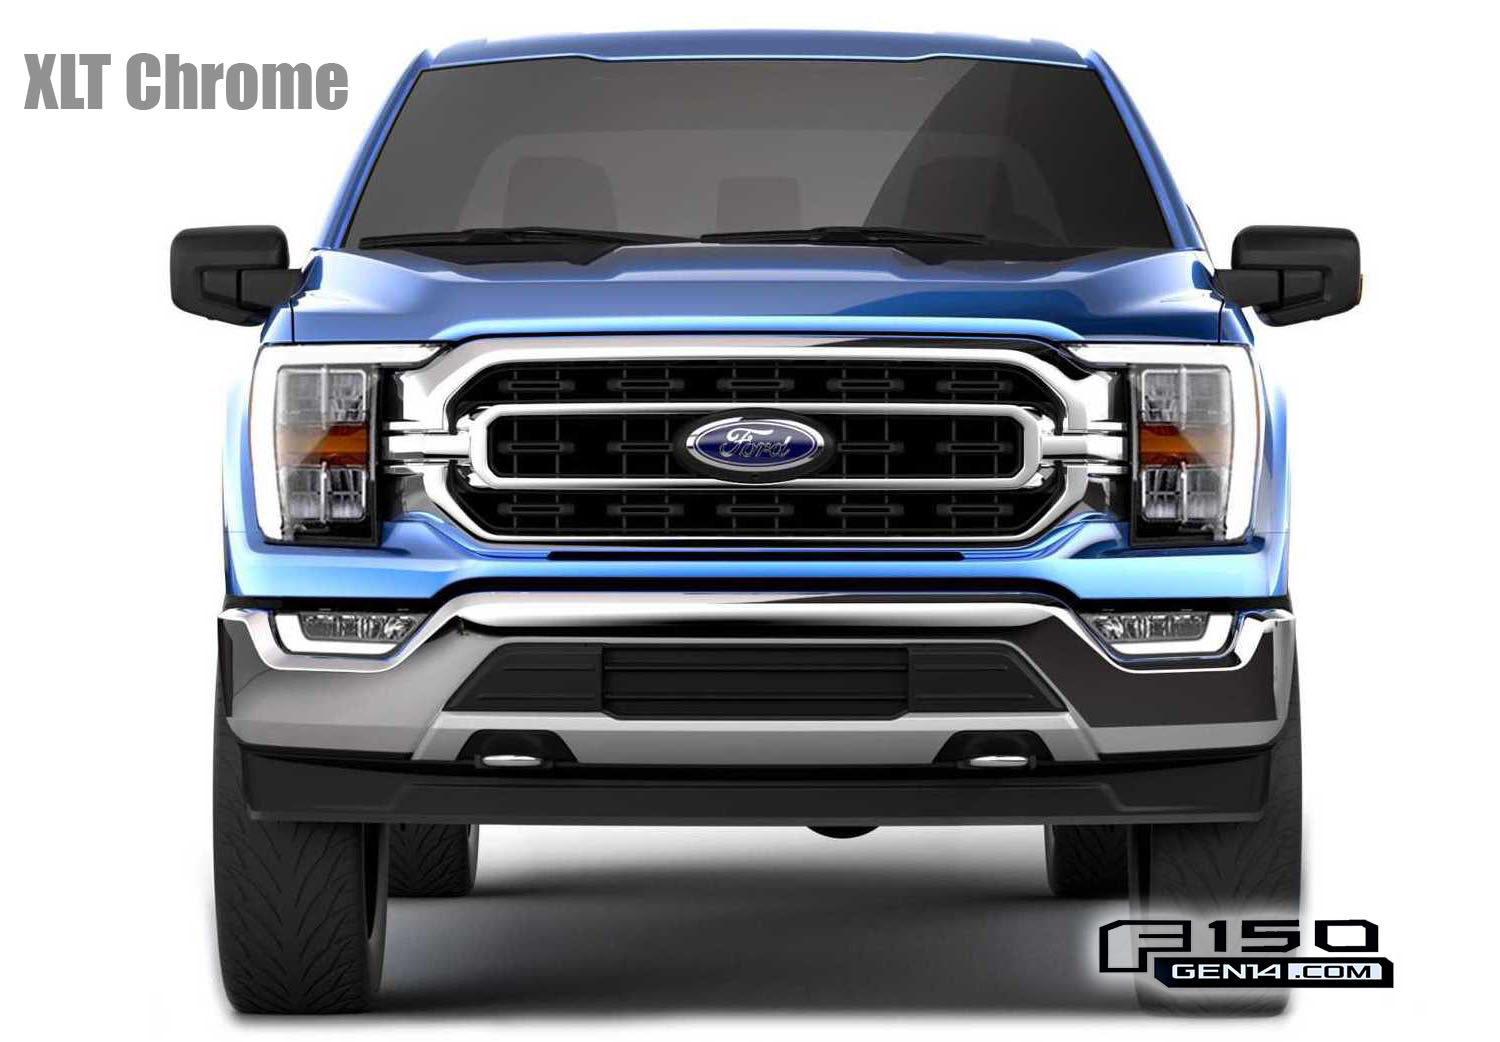 2021-ford-f-150-XLT-chrome-grille-designs.jpg